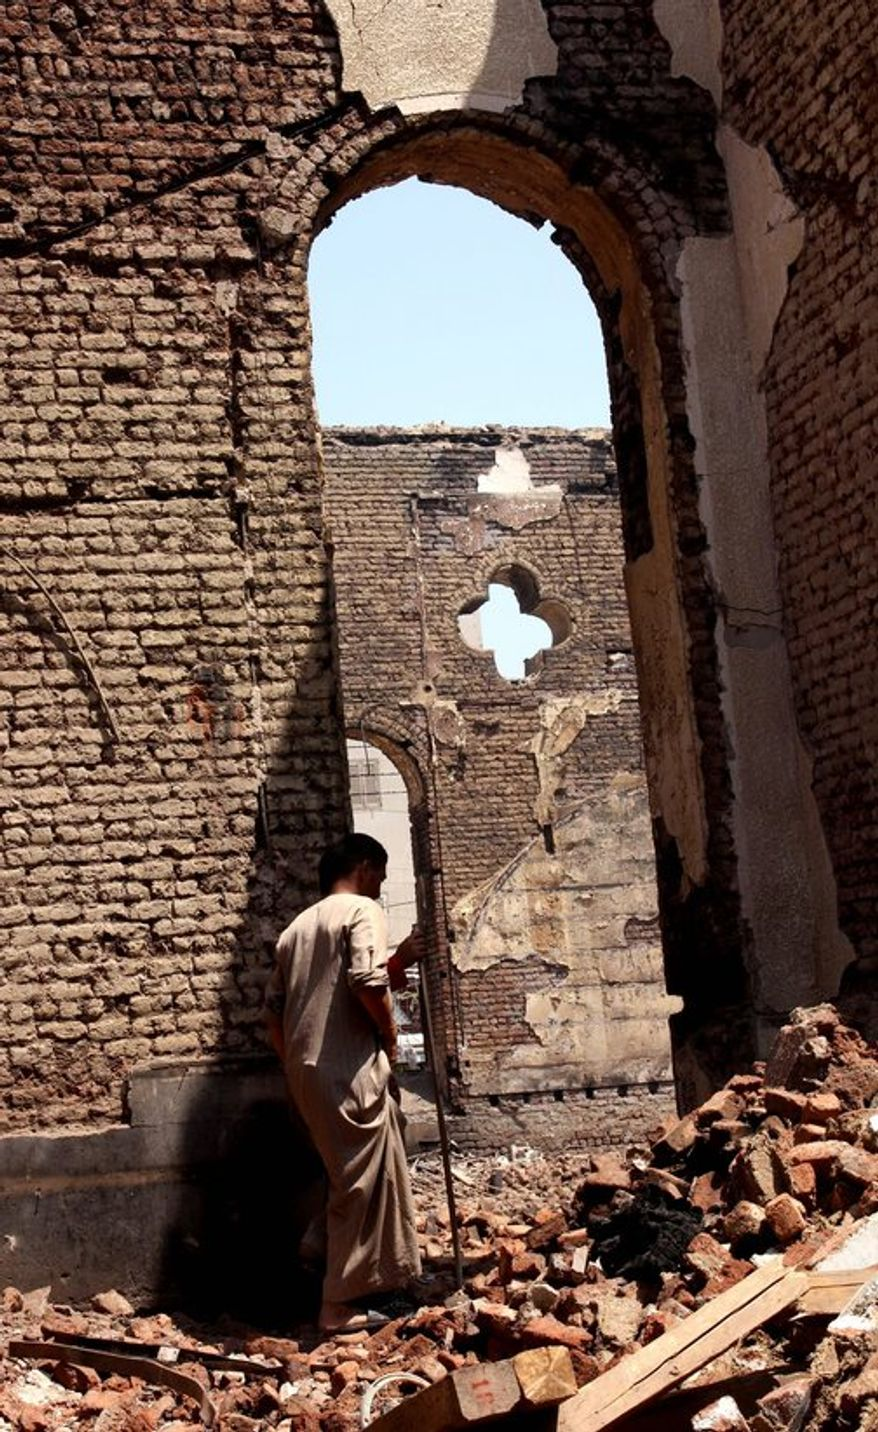 The Evangelical Church of Malawi was ransacked, looted and burned Thursday as supporters of ousted Egyptian President Mohammed Morsi took out their anger at Coptic Christians. (Associated Press)